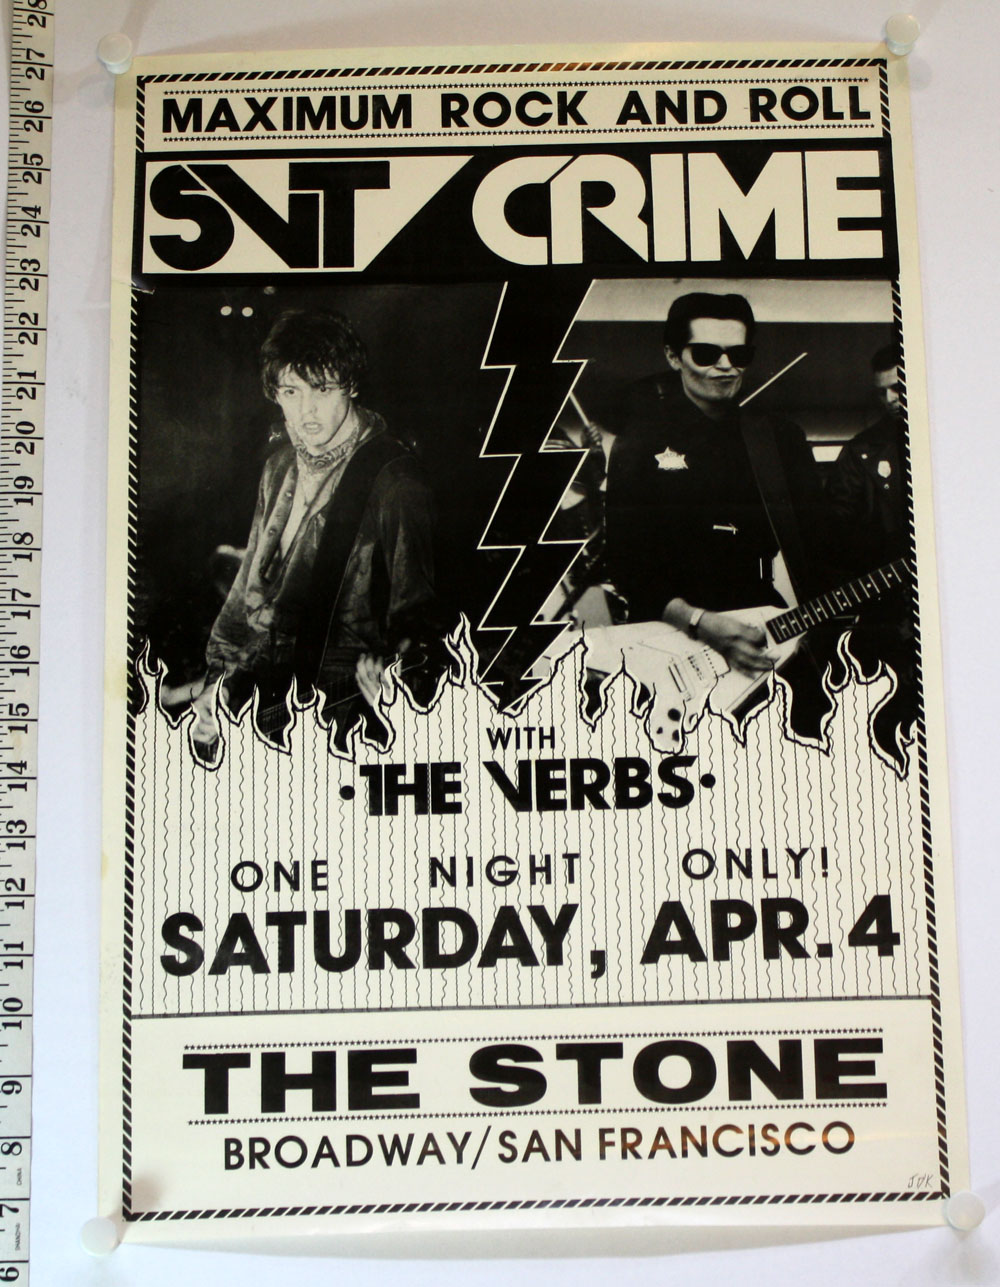 CRIME w/ SVT, Verbs at The Stone